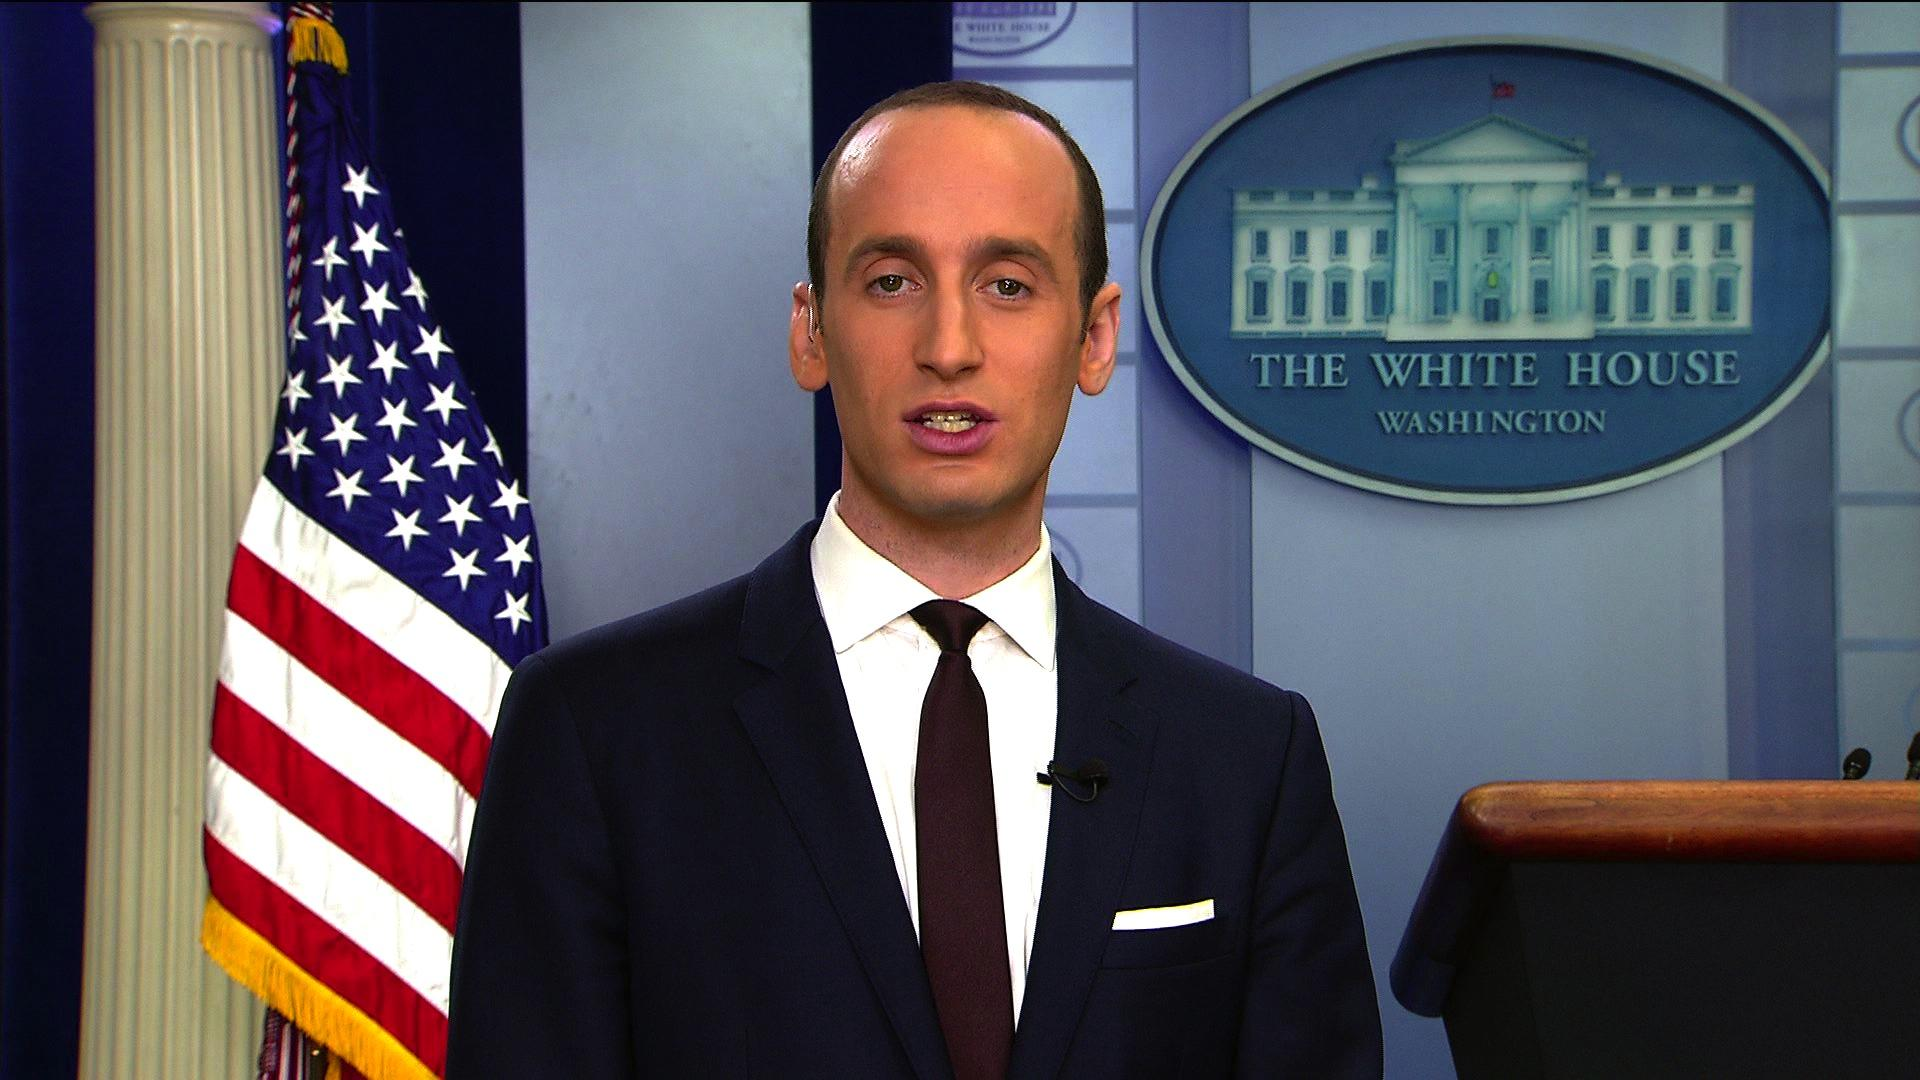 Stephen Miller repeats voter fraud claims without citing ... Stephen Miller